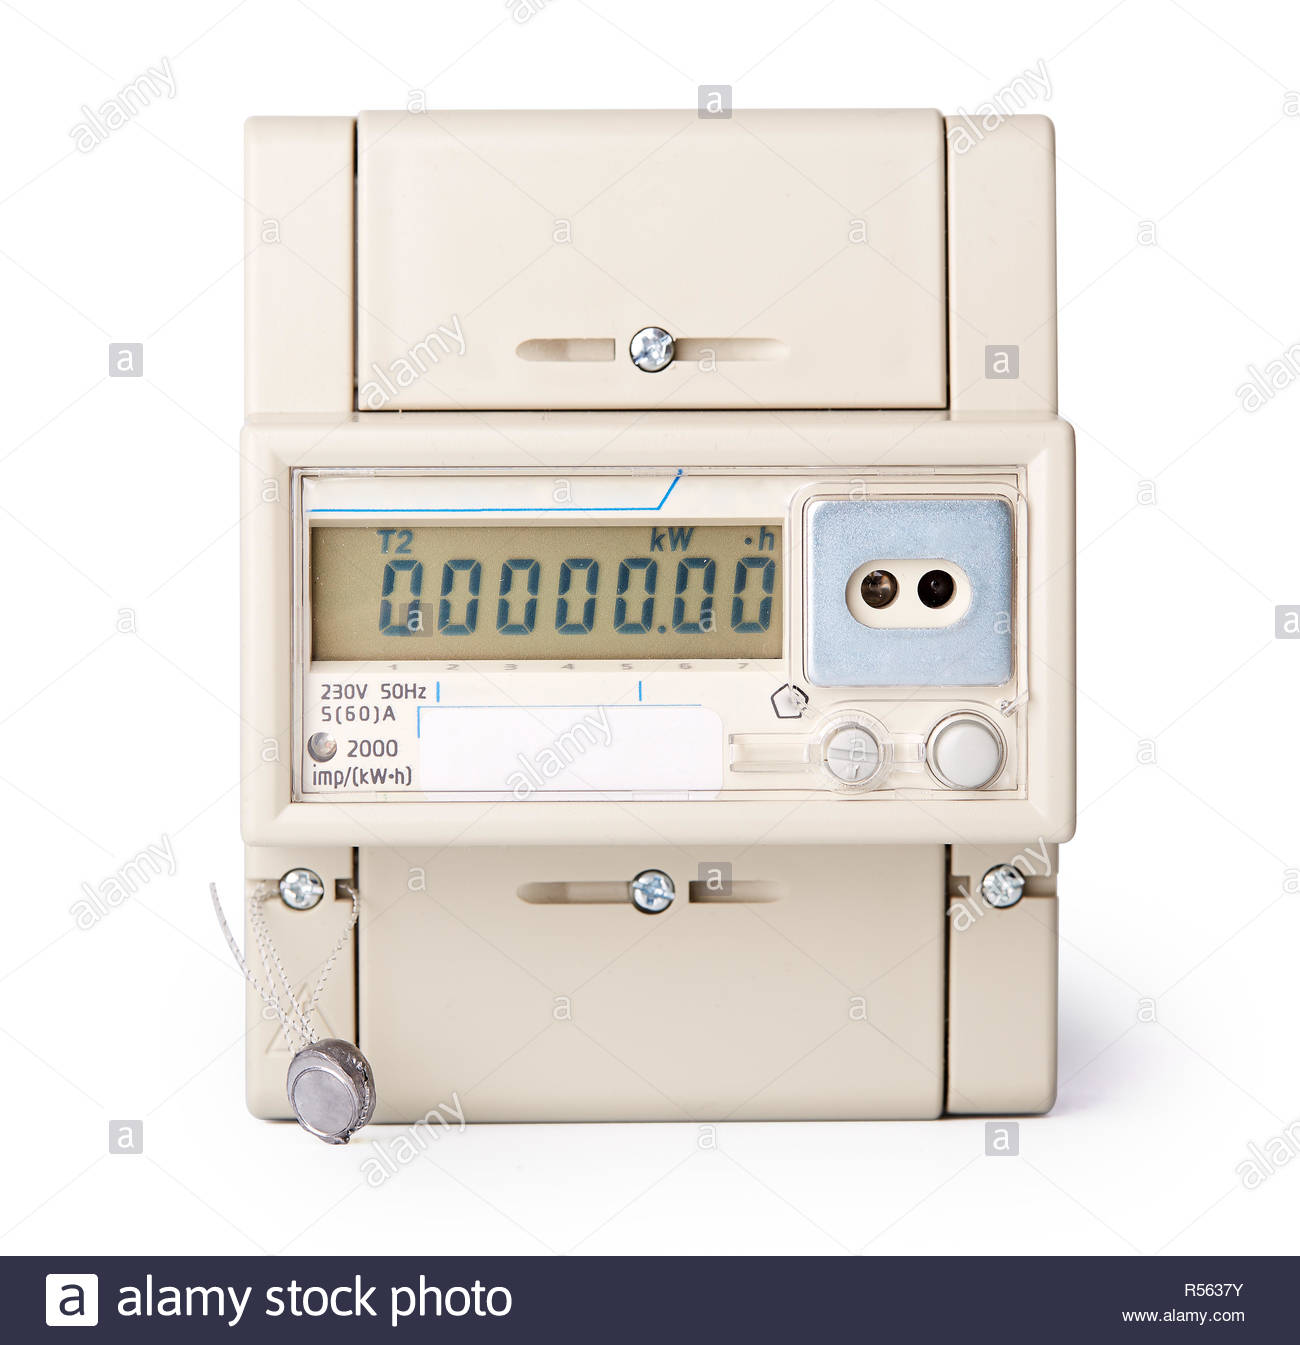 Electric meter. - Stock Image